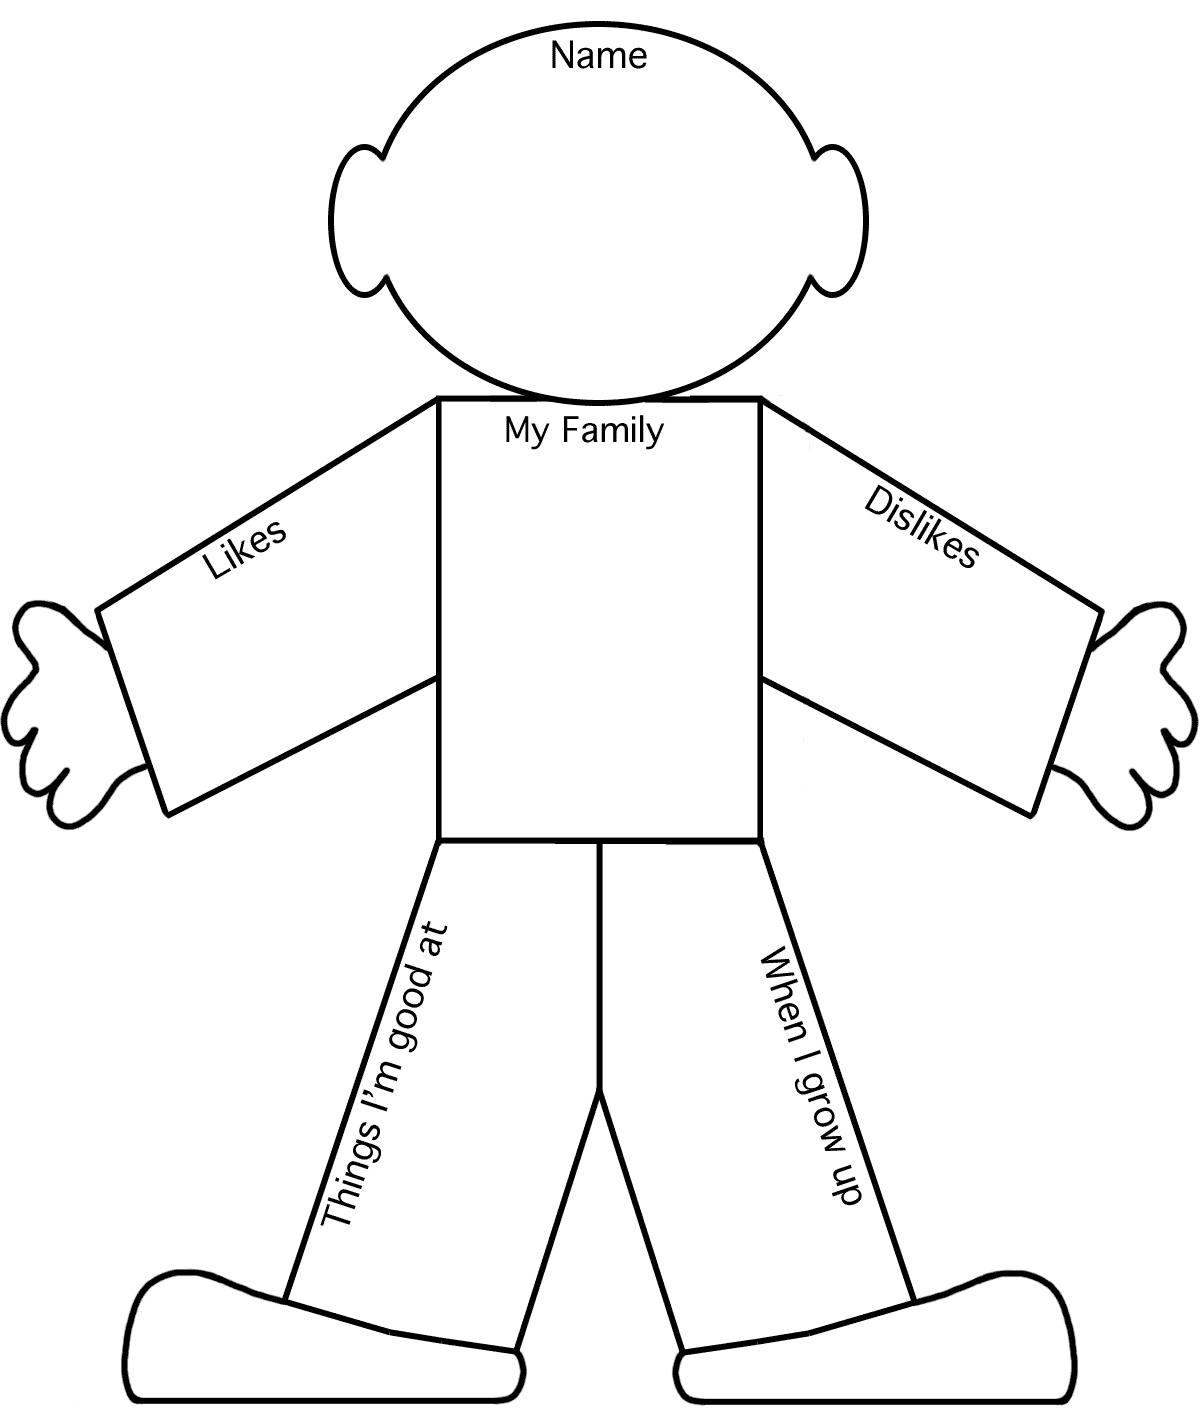 All About Me Graphic Organizer I Have Also Used This One